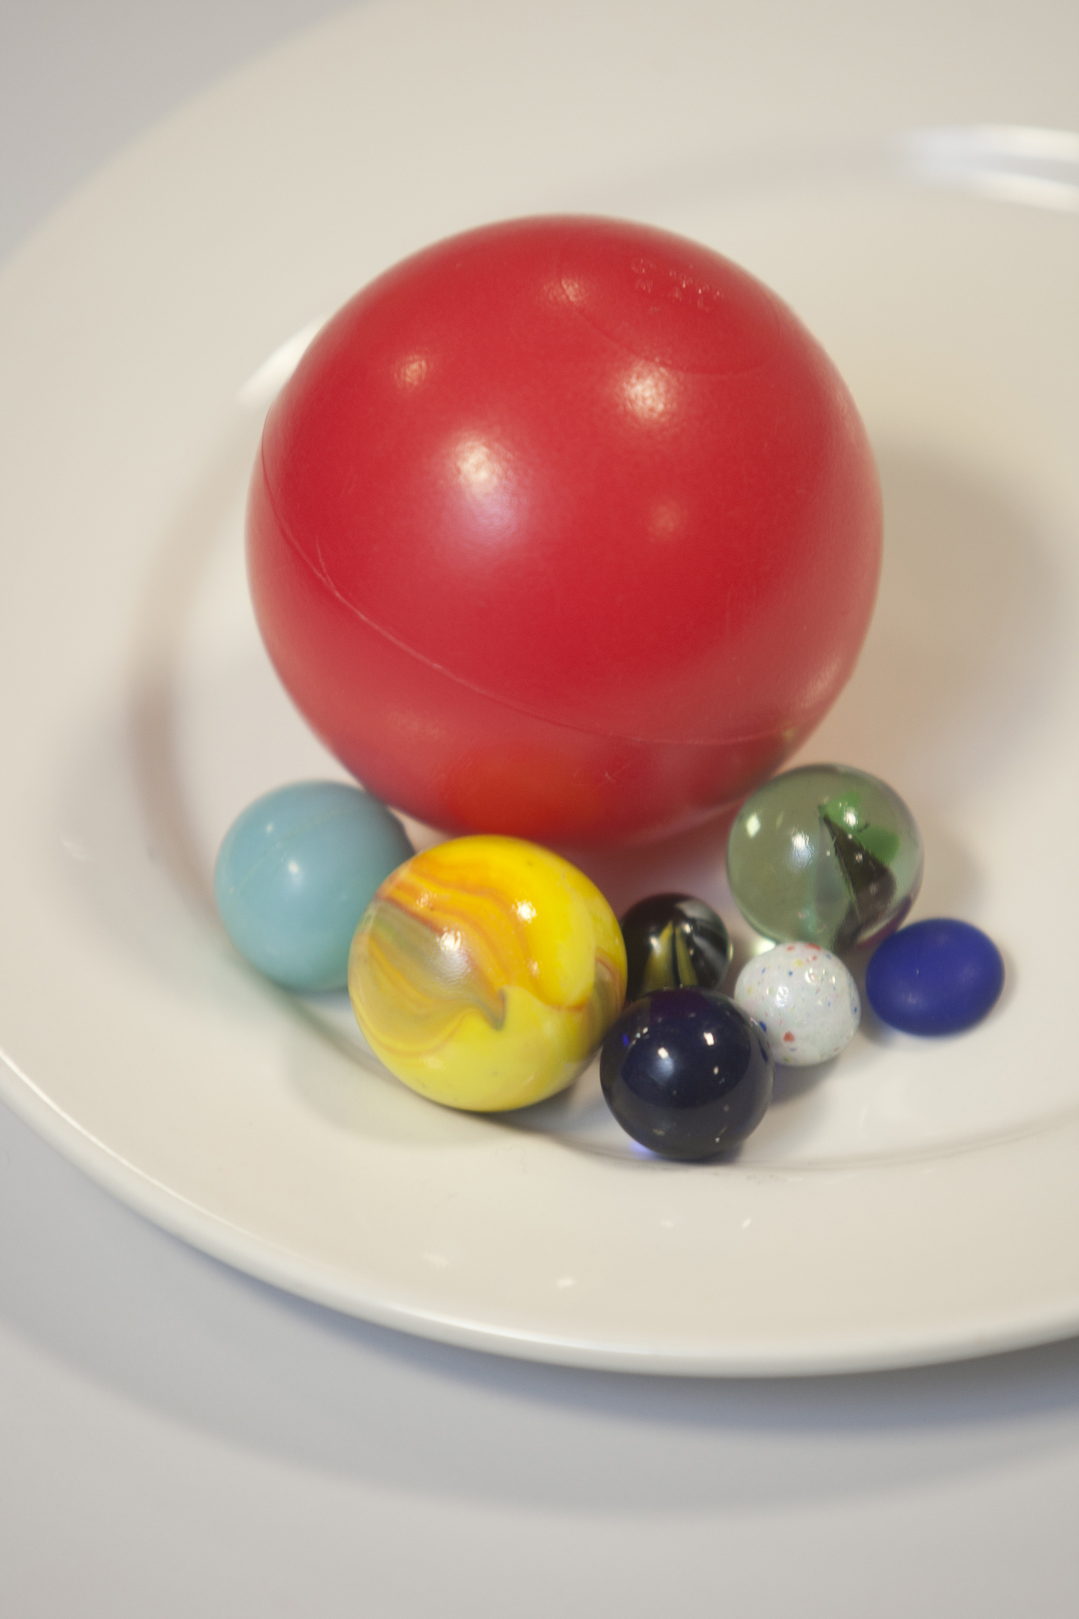 Different coloured and sized balls used for vision tests